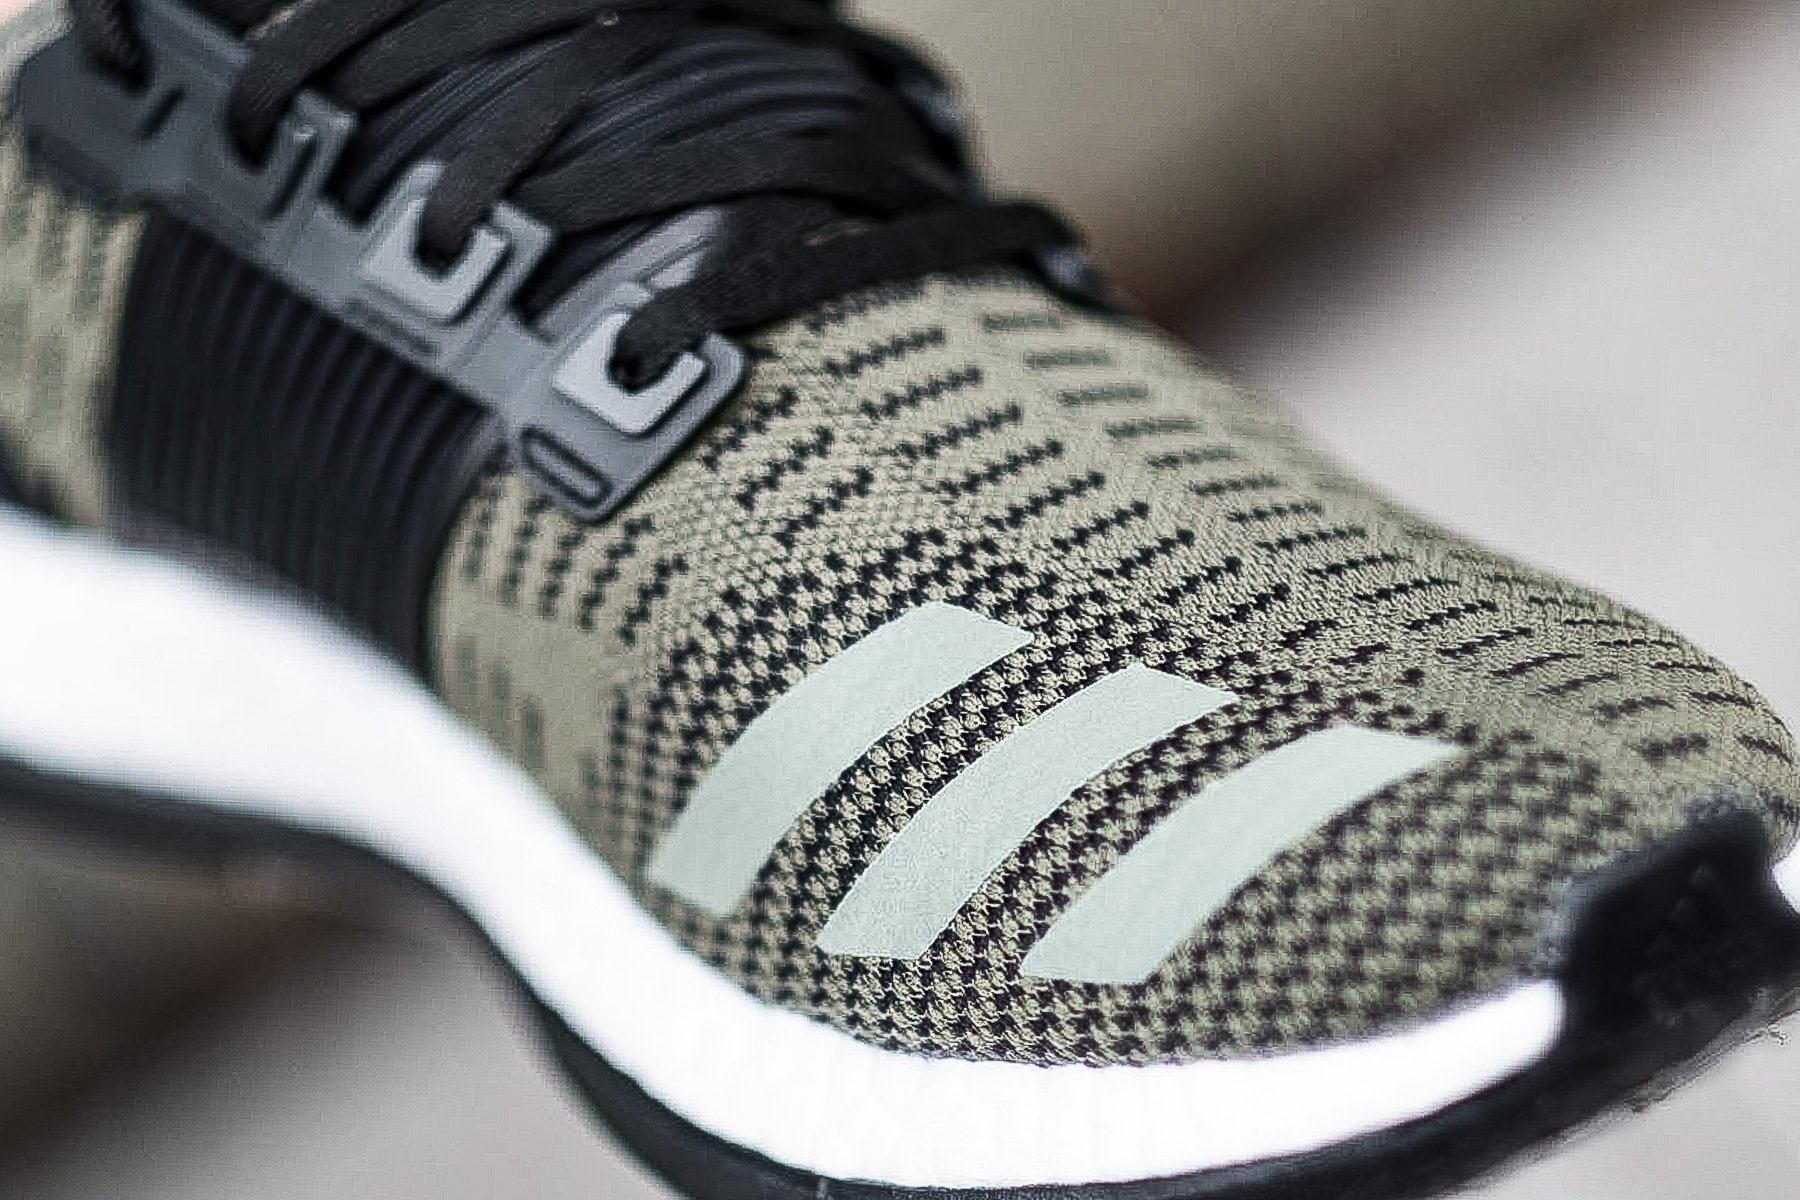 The Adidas Pureboost Zg Prime Arrives In Olive Weartesters